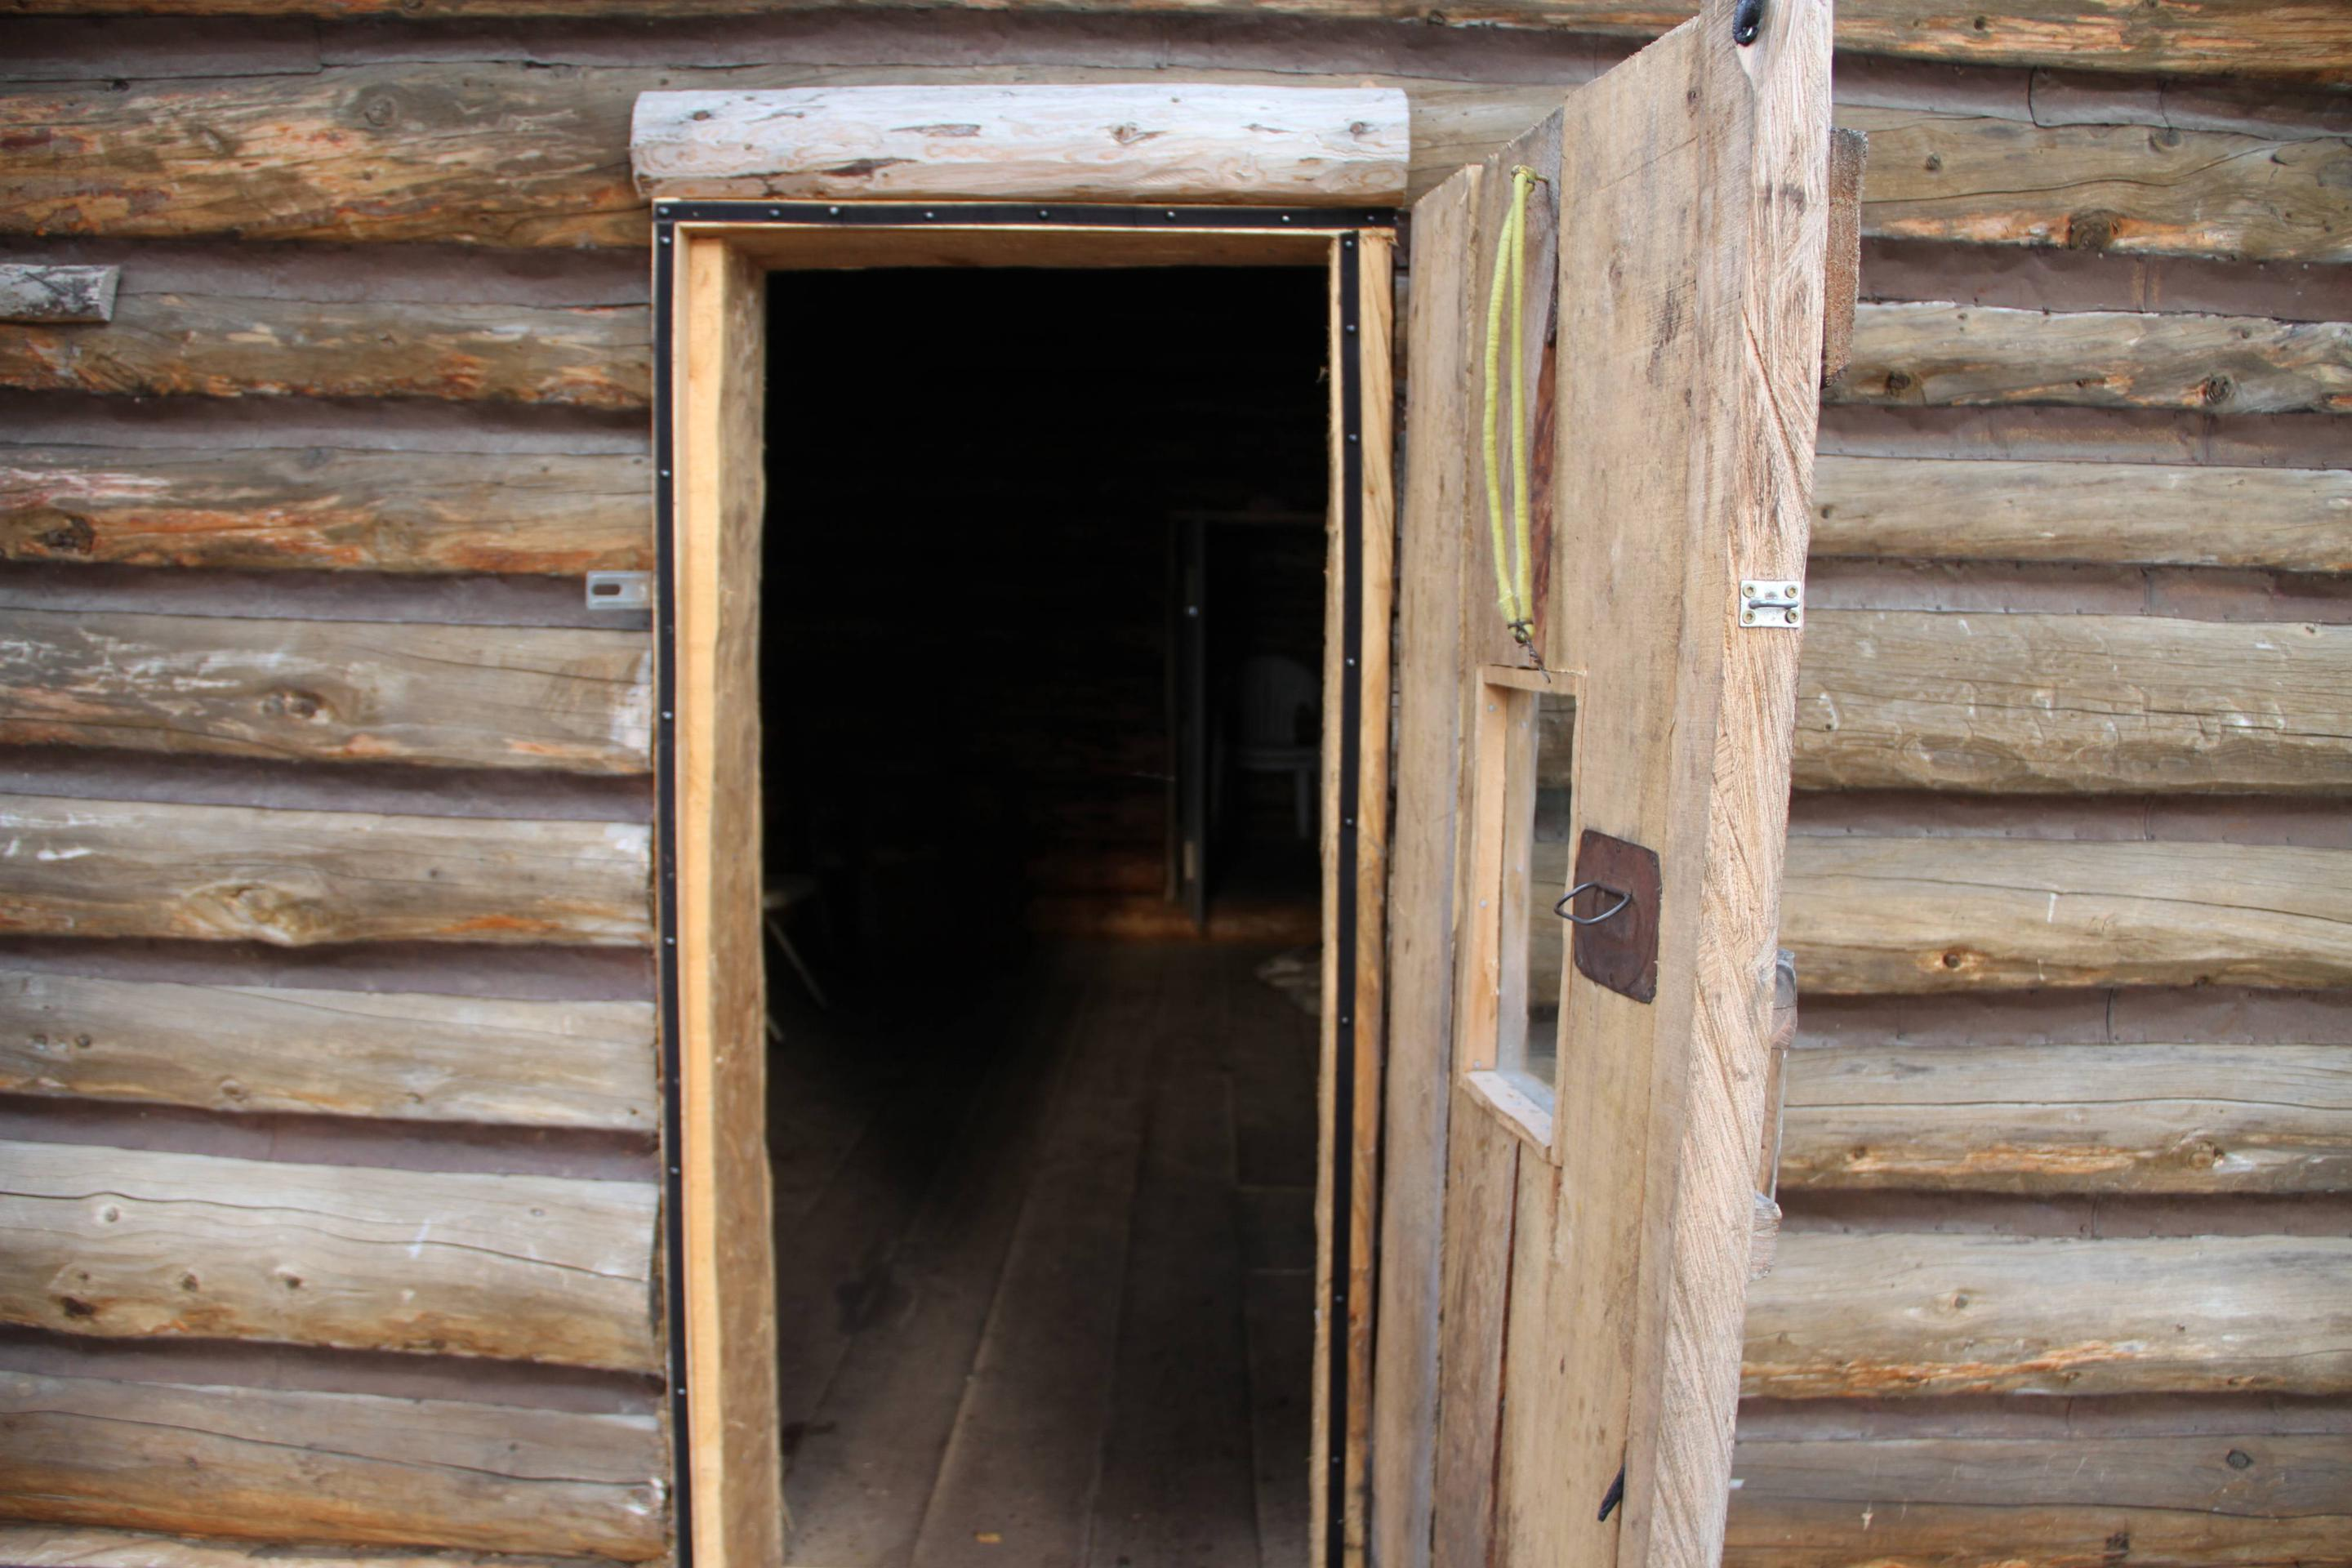 An open wooden door with a small window is set in a peeled log wall.Come on in!